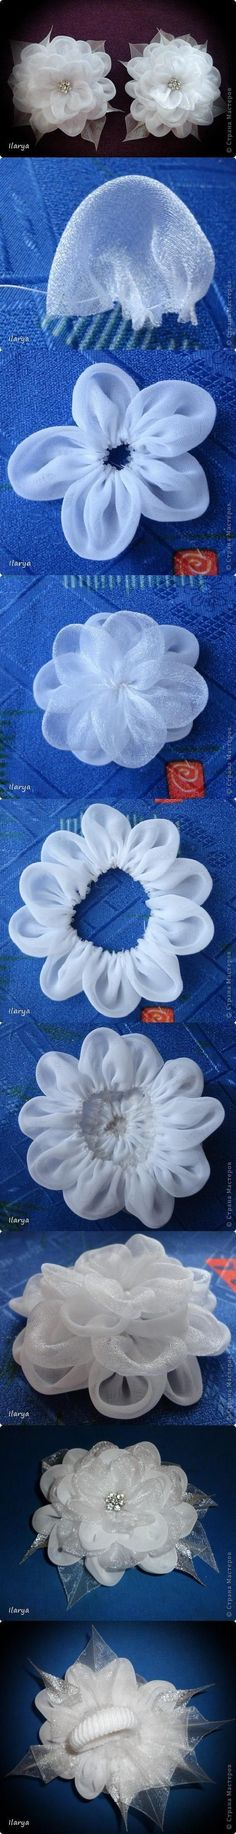 DIY Fabric Lust Flower LIKE Us on Facebook ==> https://www.facebook.com/UsefulDiy                                                                                                                                                      More